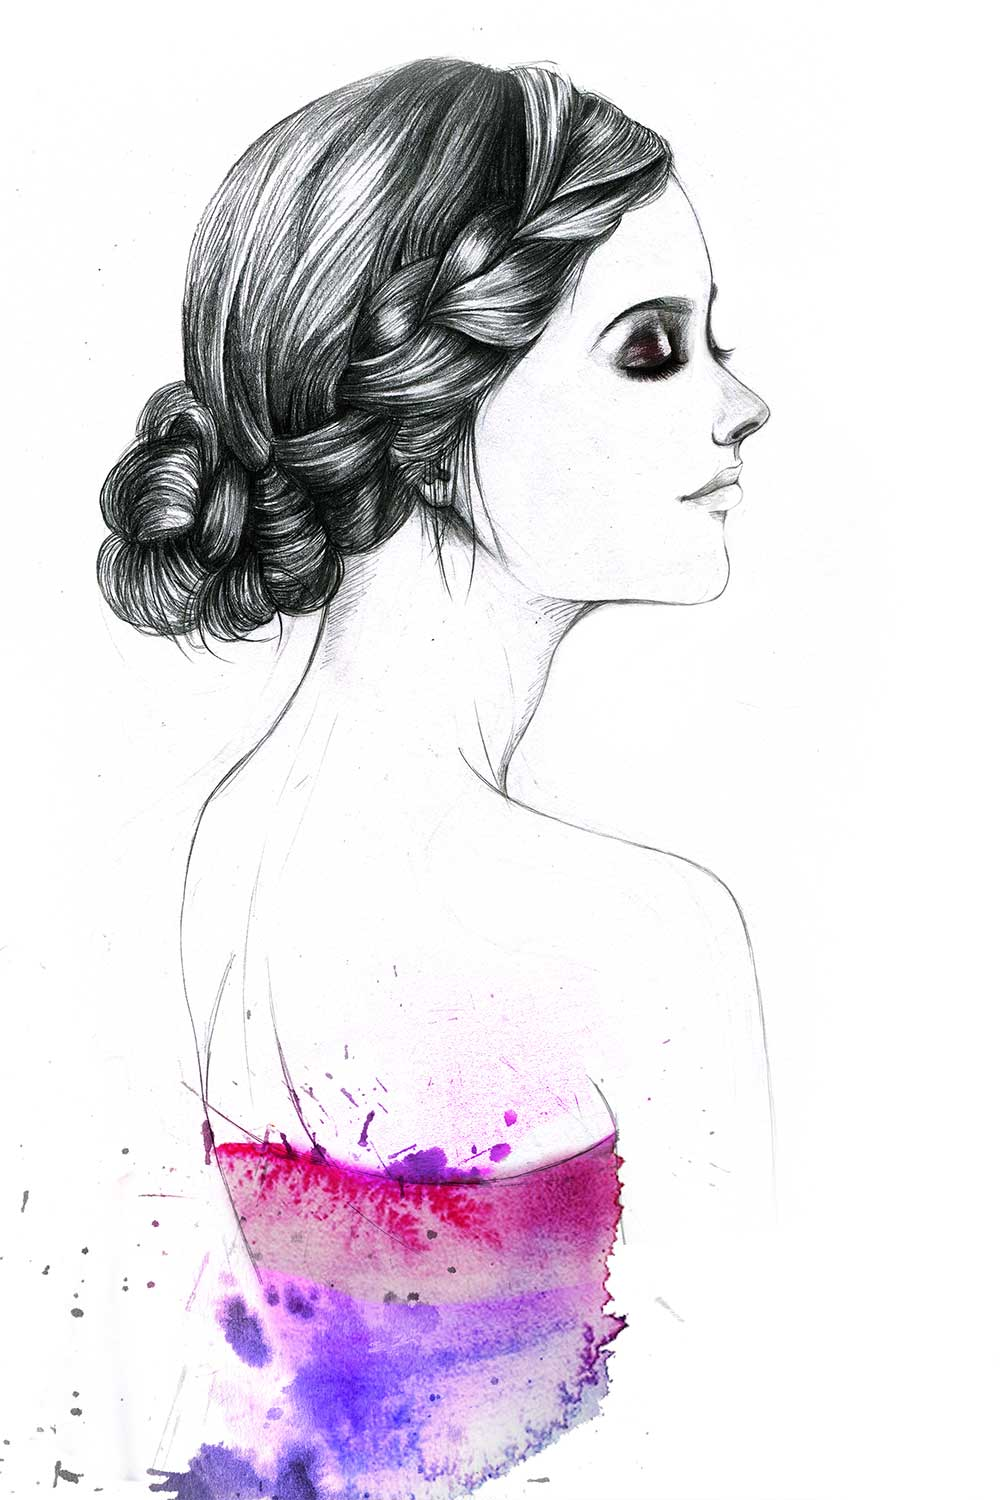 Fashion-Illustration-for-Gino-hair-salon-by-Fashion-Illustrator-Rongrong-DeVoe-2